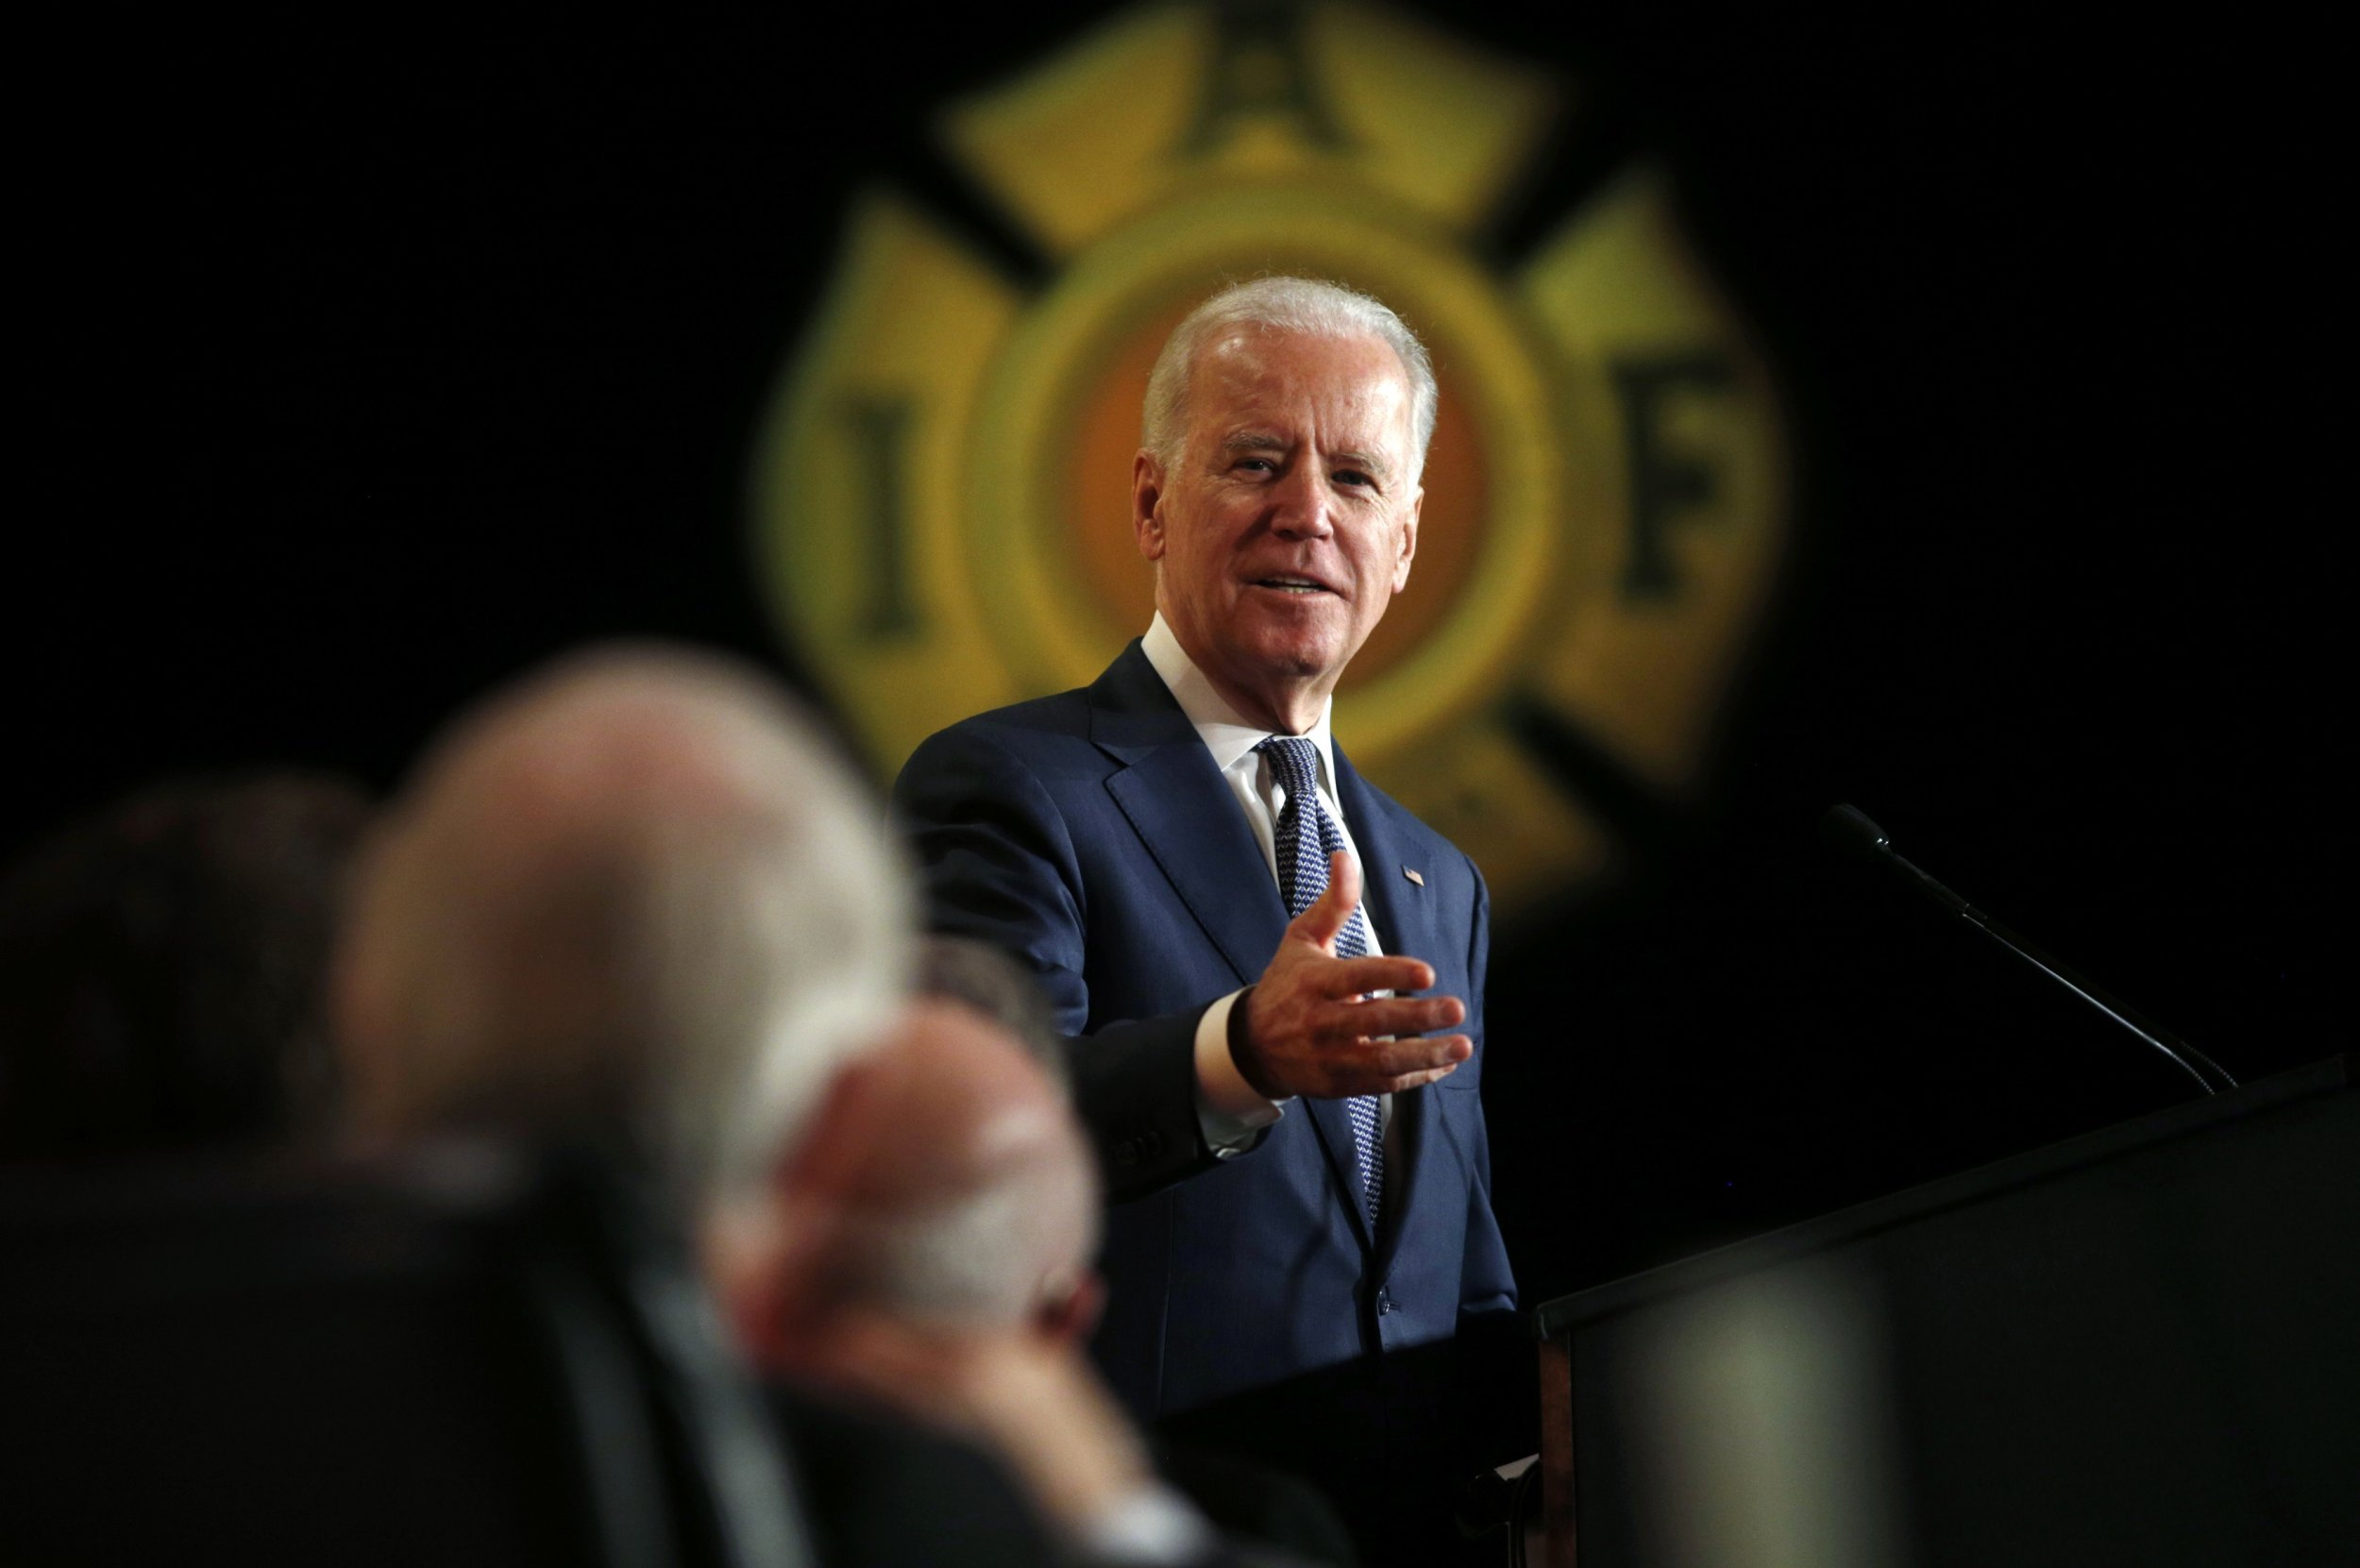 0928_Joe_Biden_Democratic_debate_01